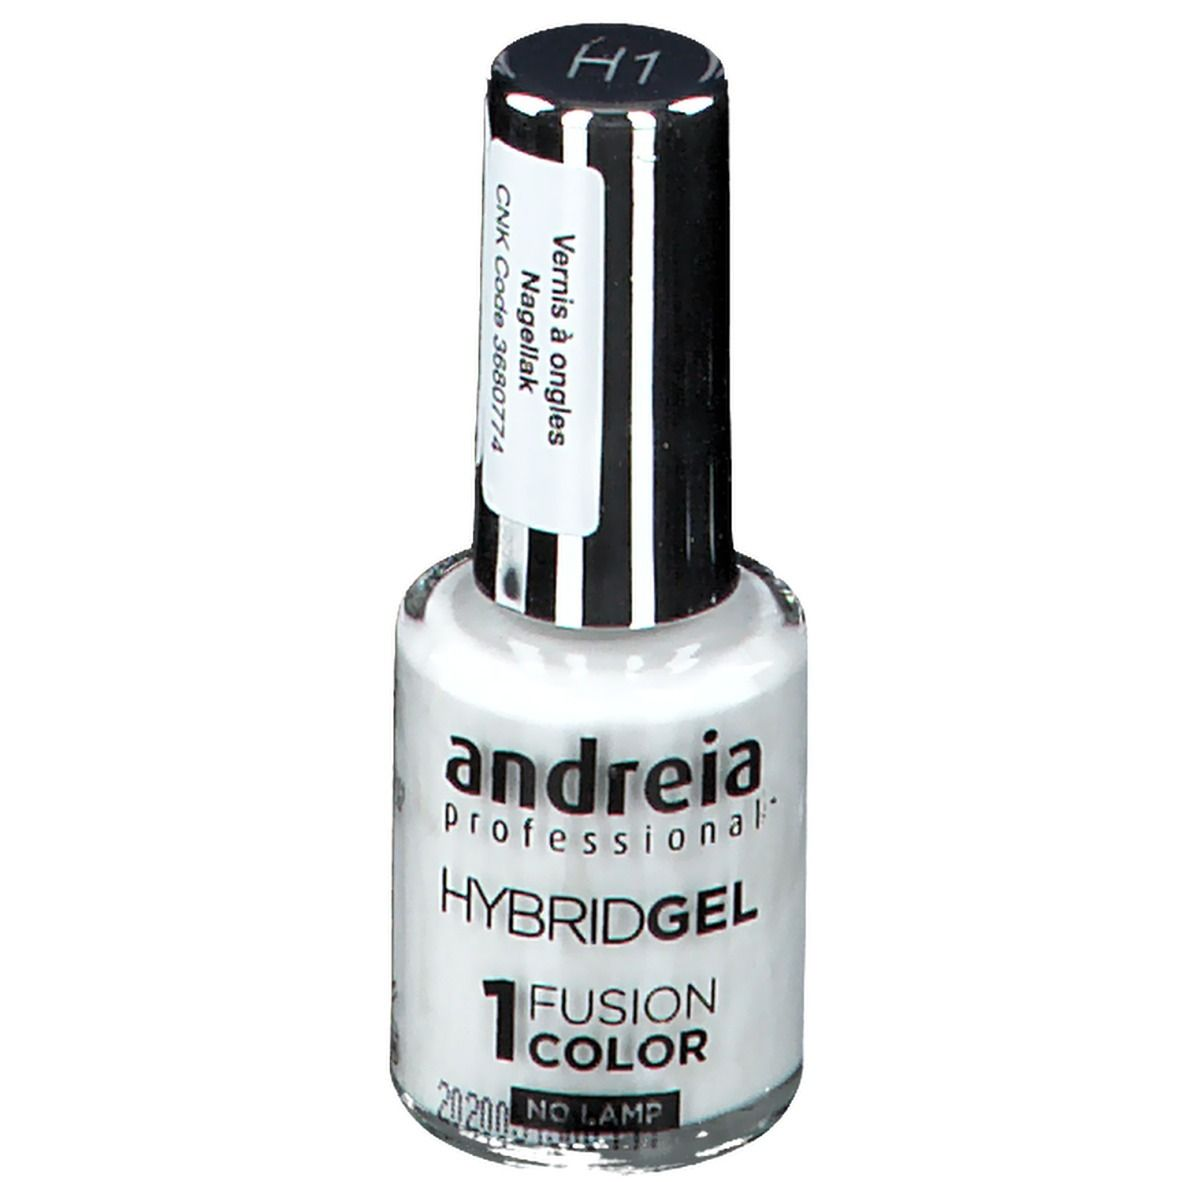 Image of Andreia Hybrid Nagellack Gel Fusion Color H1 Schneewittchen